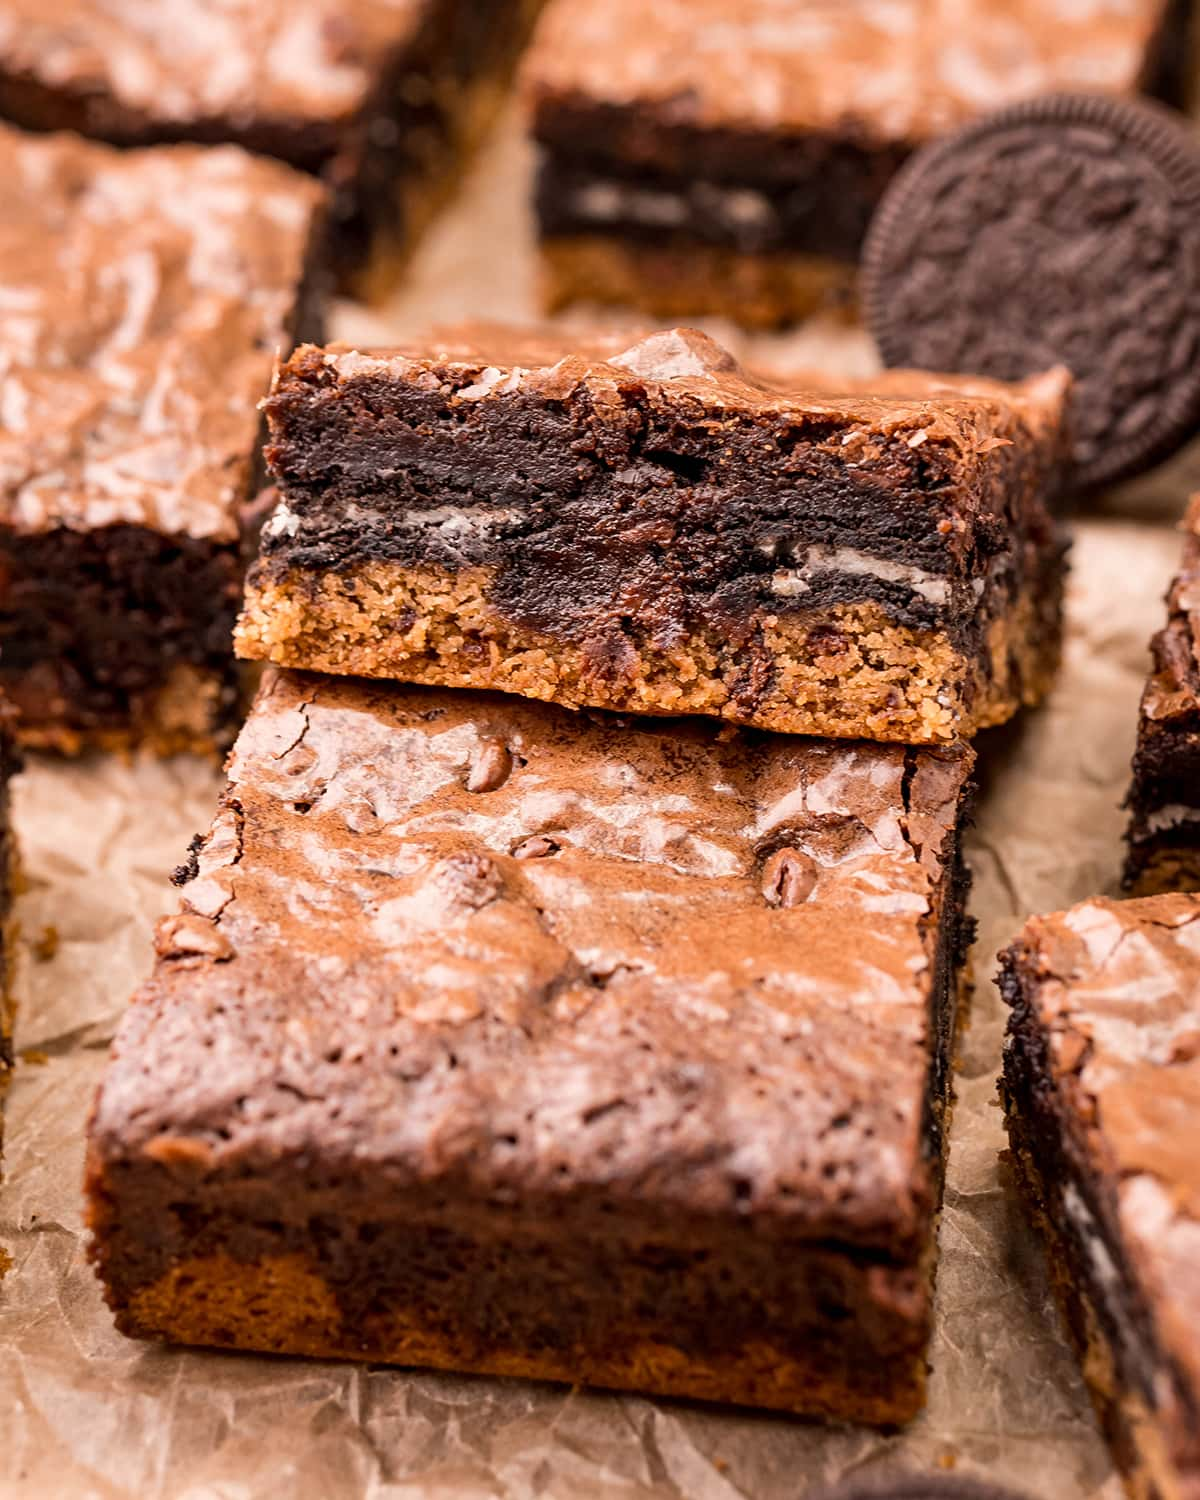 A cookie bar with chocolate chip cookie, an Oreo, and brownie on top.